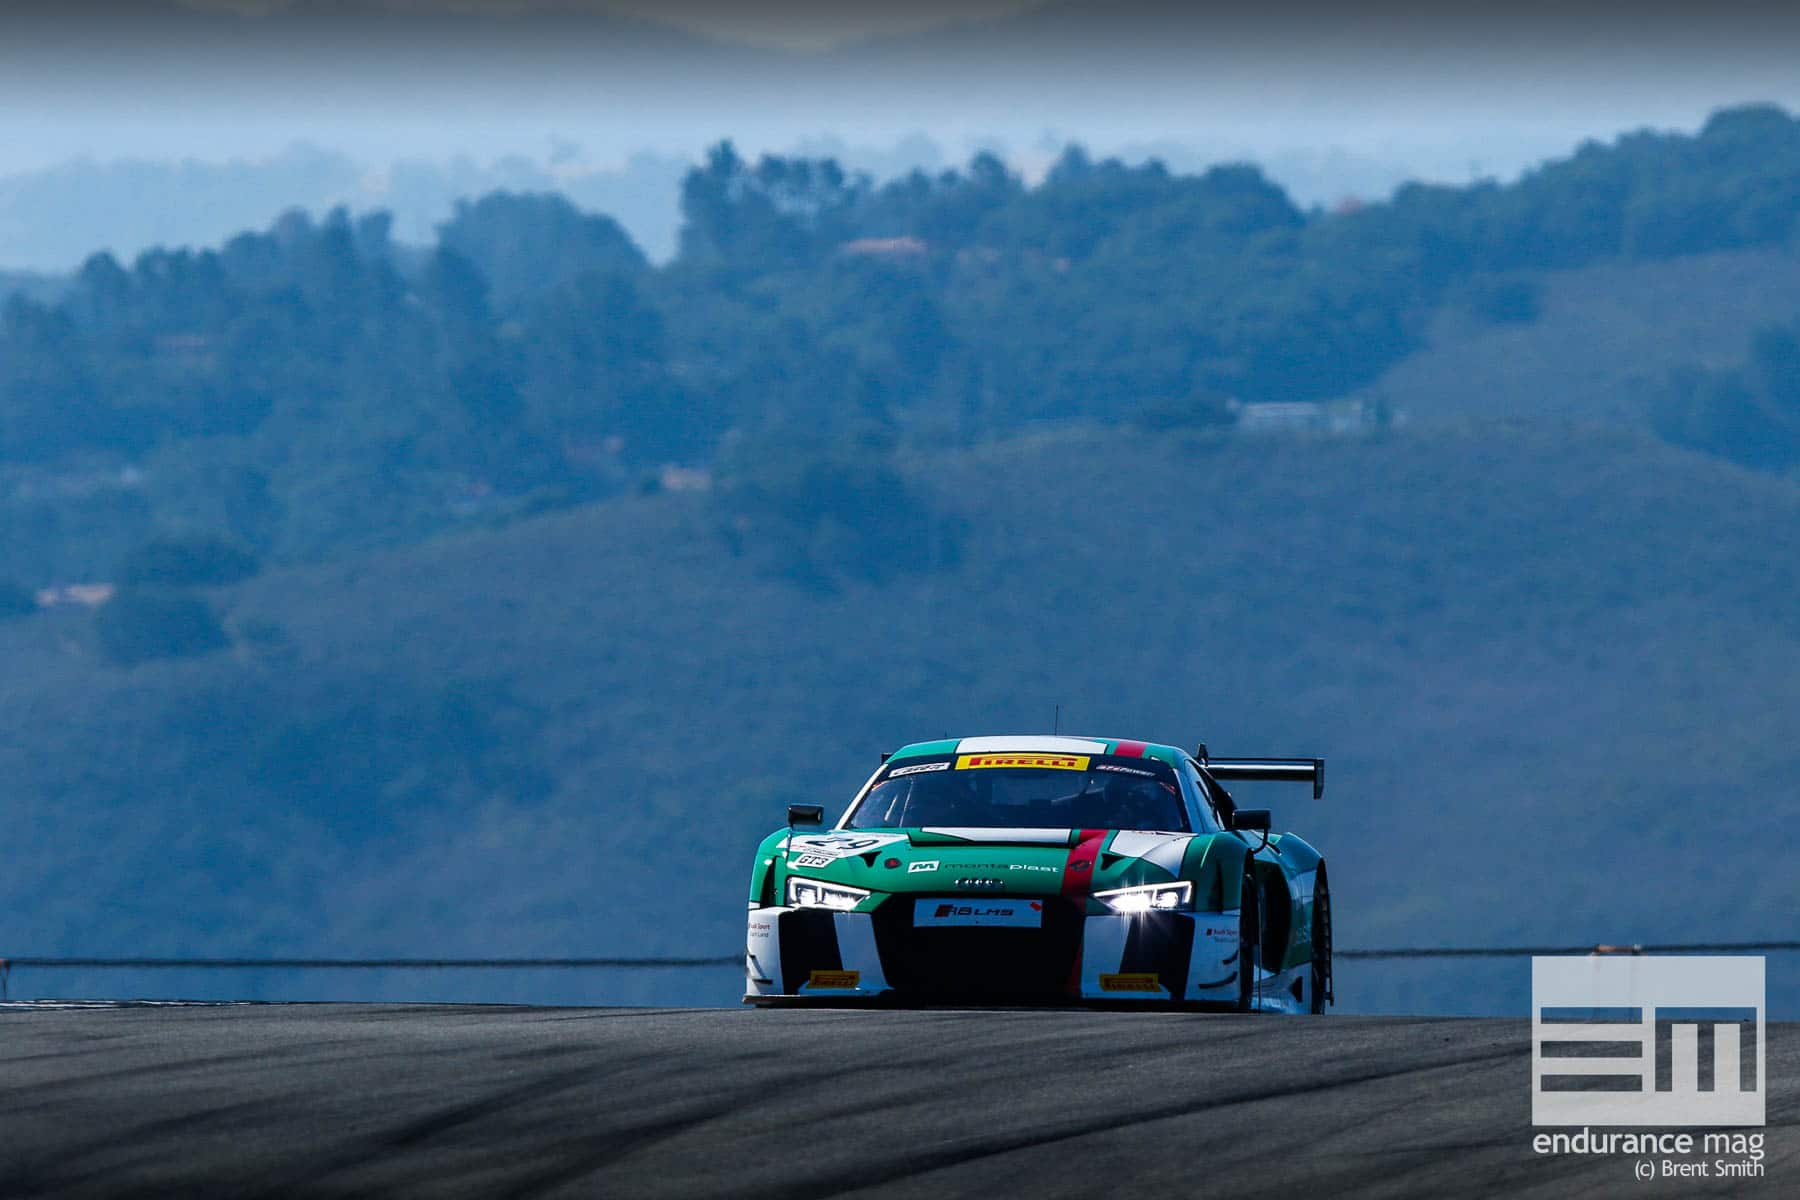 California 8 Hours - Intercontinental GT Challenge - Mazda Raceway Laguna Seca - 29 Audi Sport Team Land, Connor de Phillippi, Christopher Mies, Christopher Haase, Audi R8 LMS